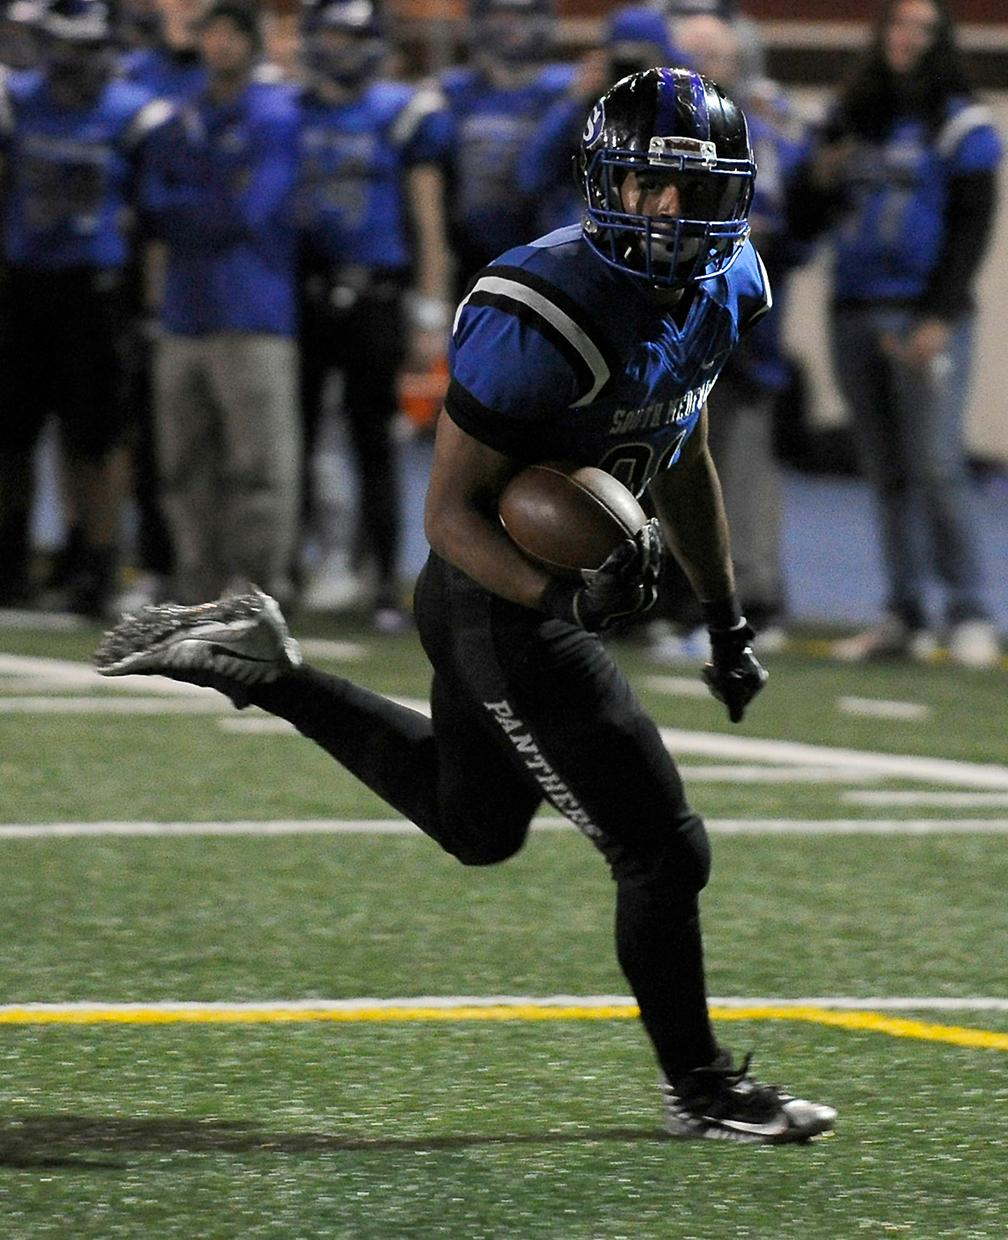 Andy Atkinson / Mail Tribune{ } South's Terrence Butler goes untouched to the endzone for a touchdown in the 3rd quarter.